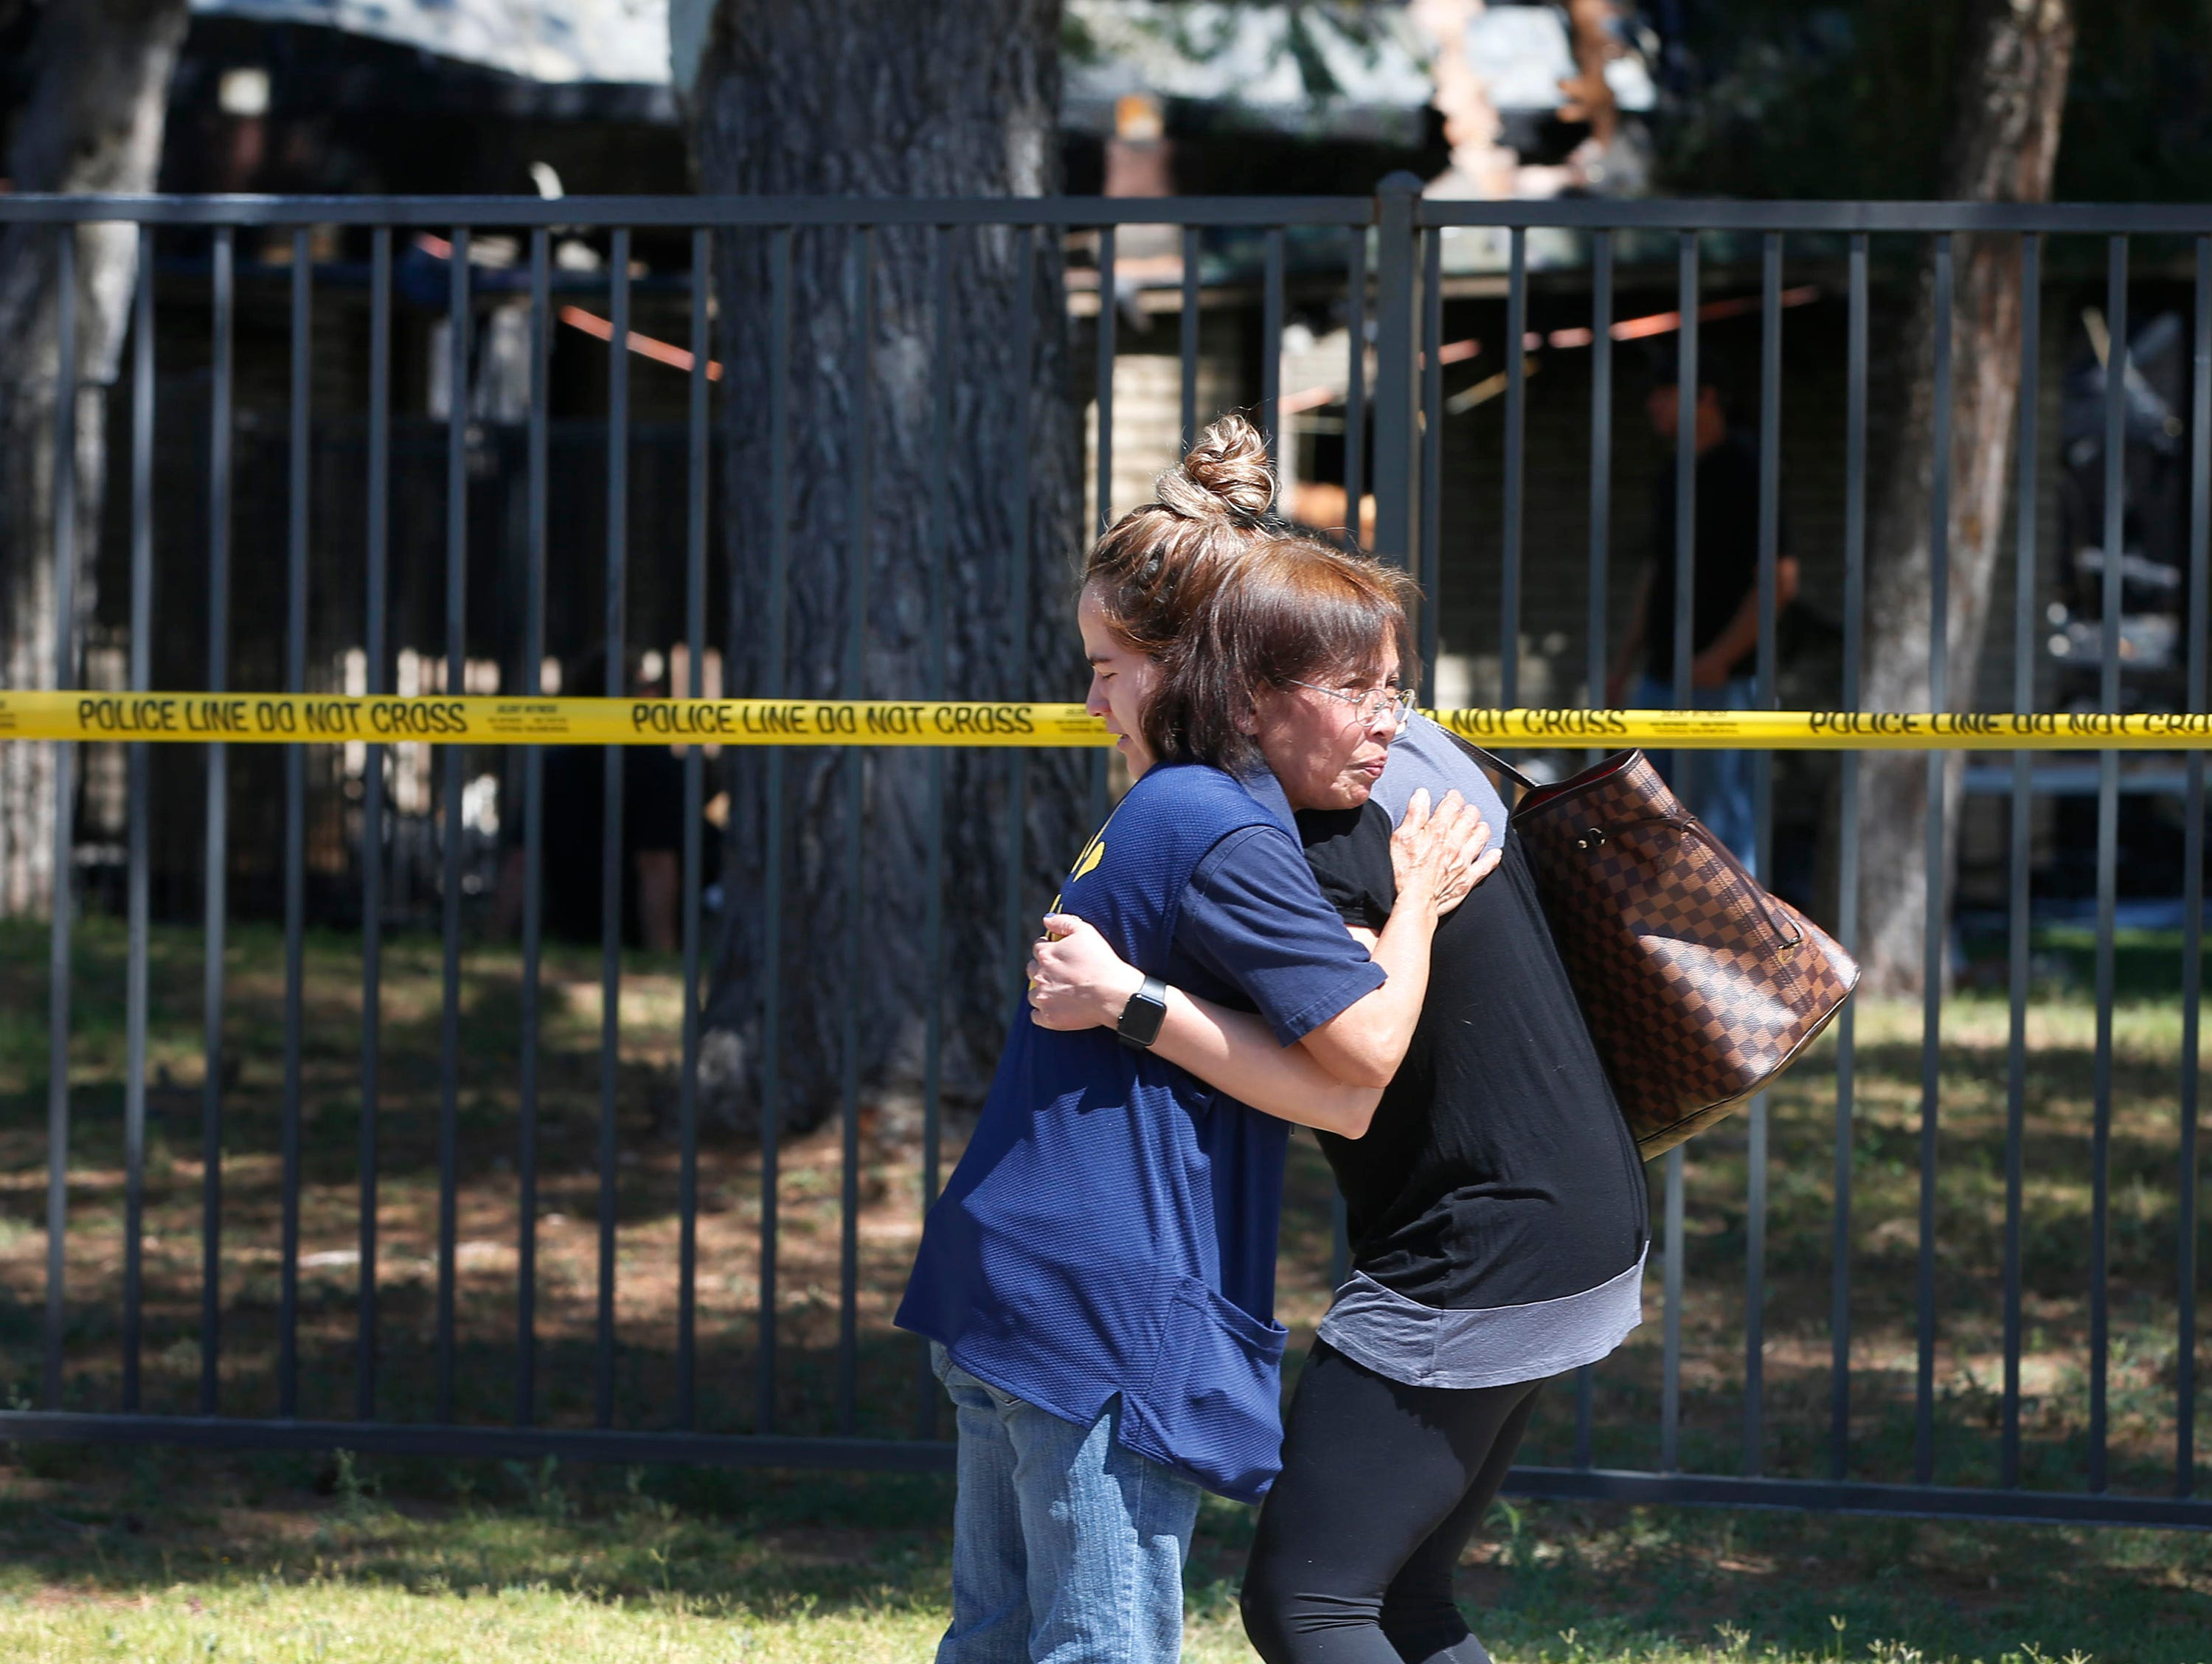 Parishioner Virginia Legarce (left) and Meredith Sanchez, Castillo console each other outside St. Joseph Catholic Church in Phoenix on May 1, 2019, after a fire destroyed most of the church.